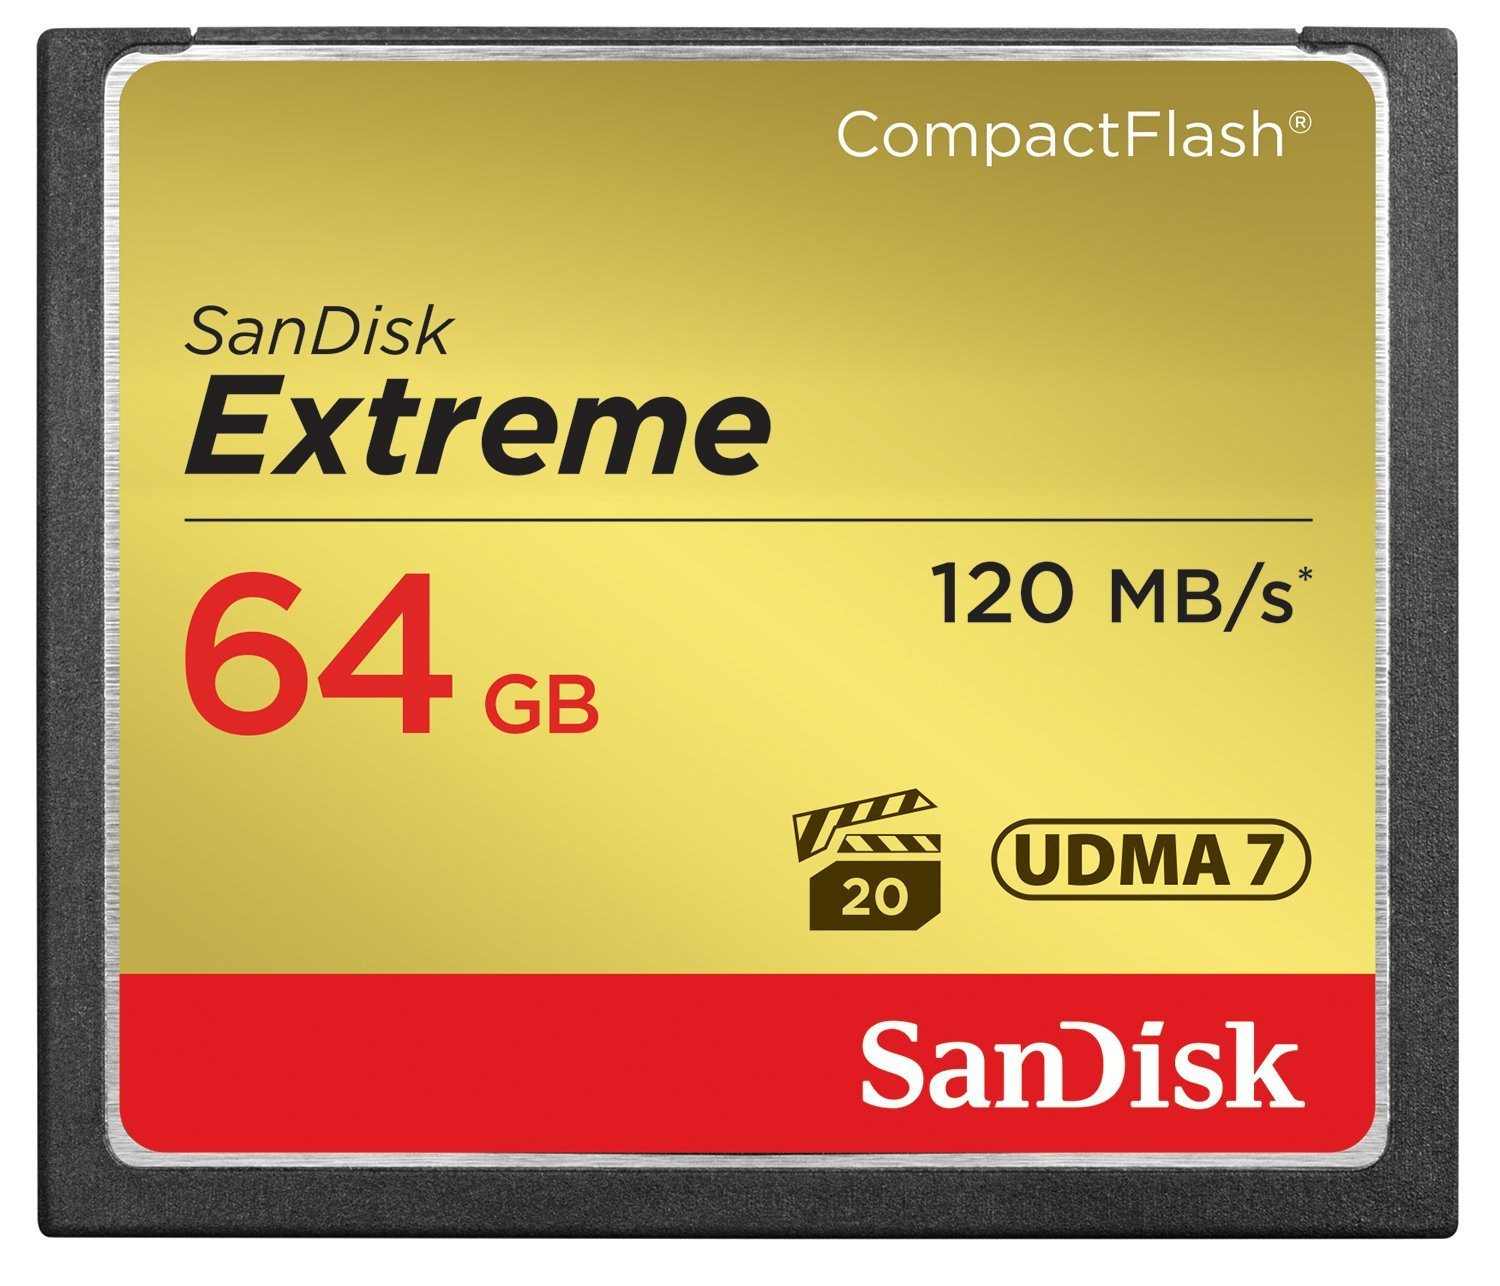 B00EZE6V50 SanDisk Extreme 64GB Compact Flash Memory Card by SanDisk